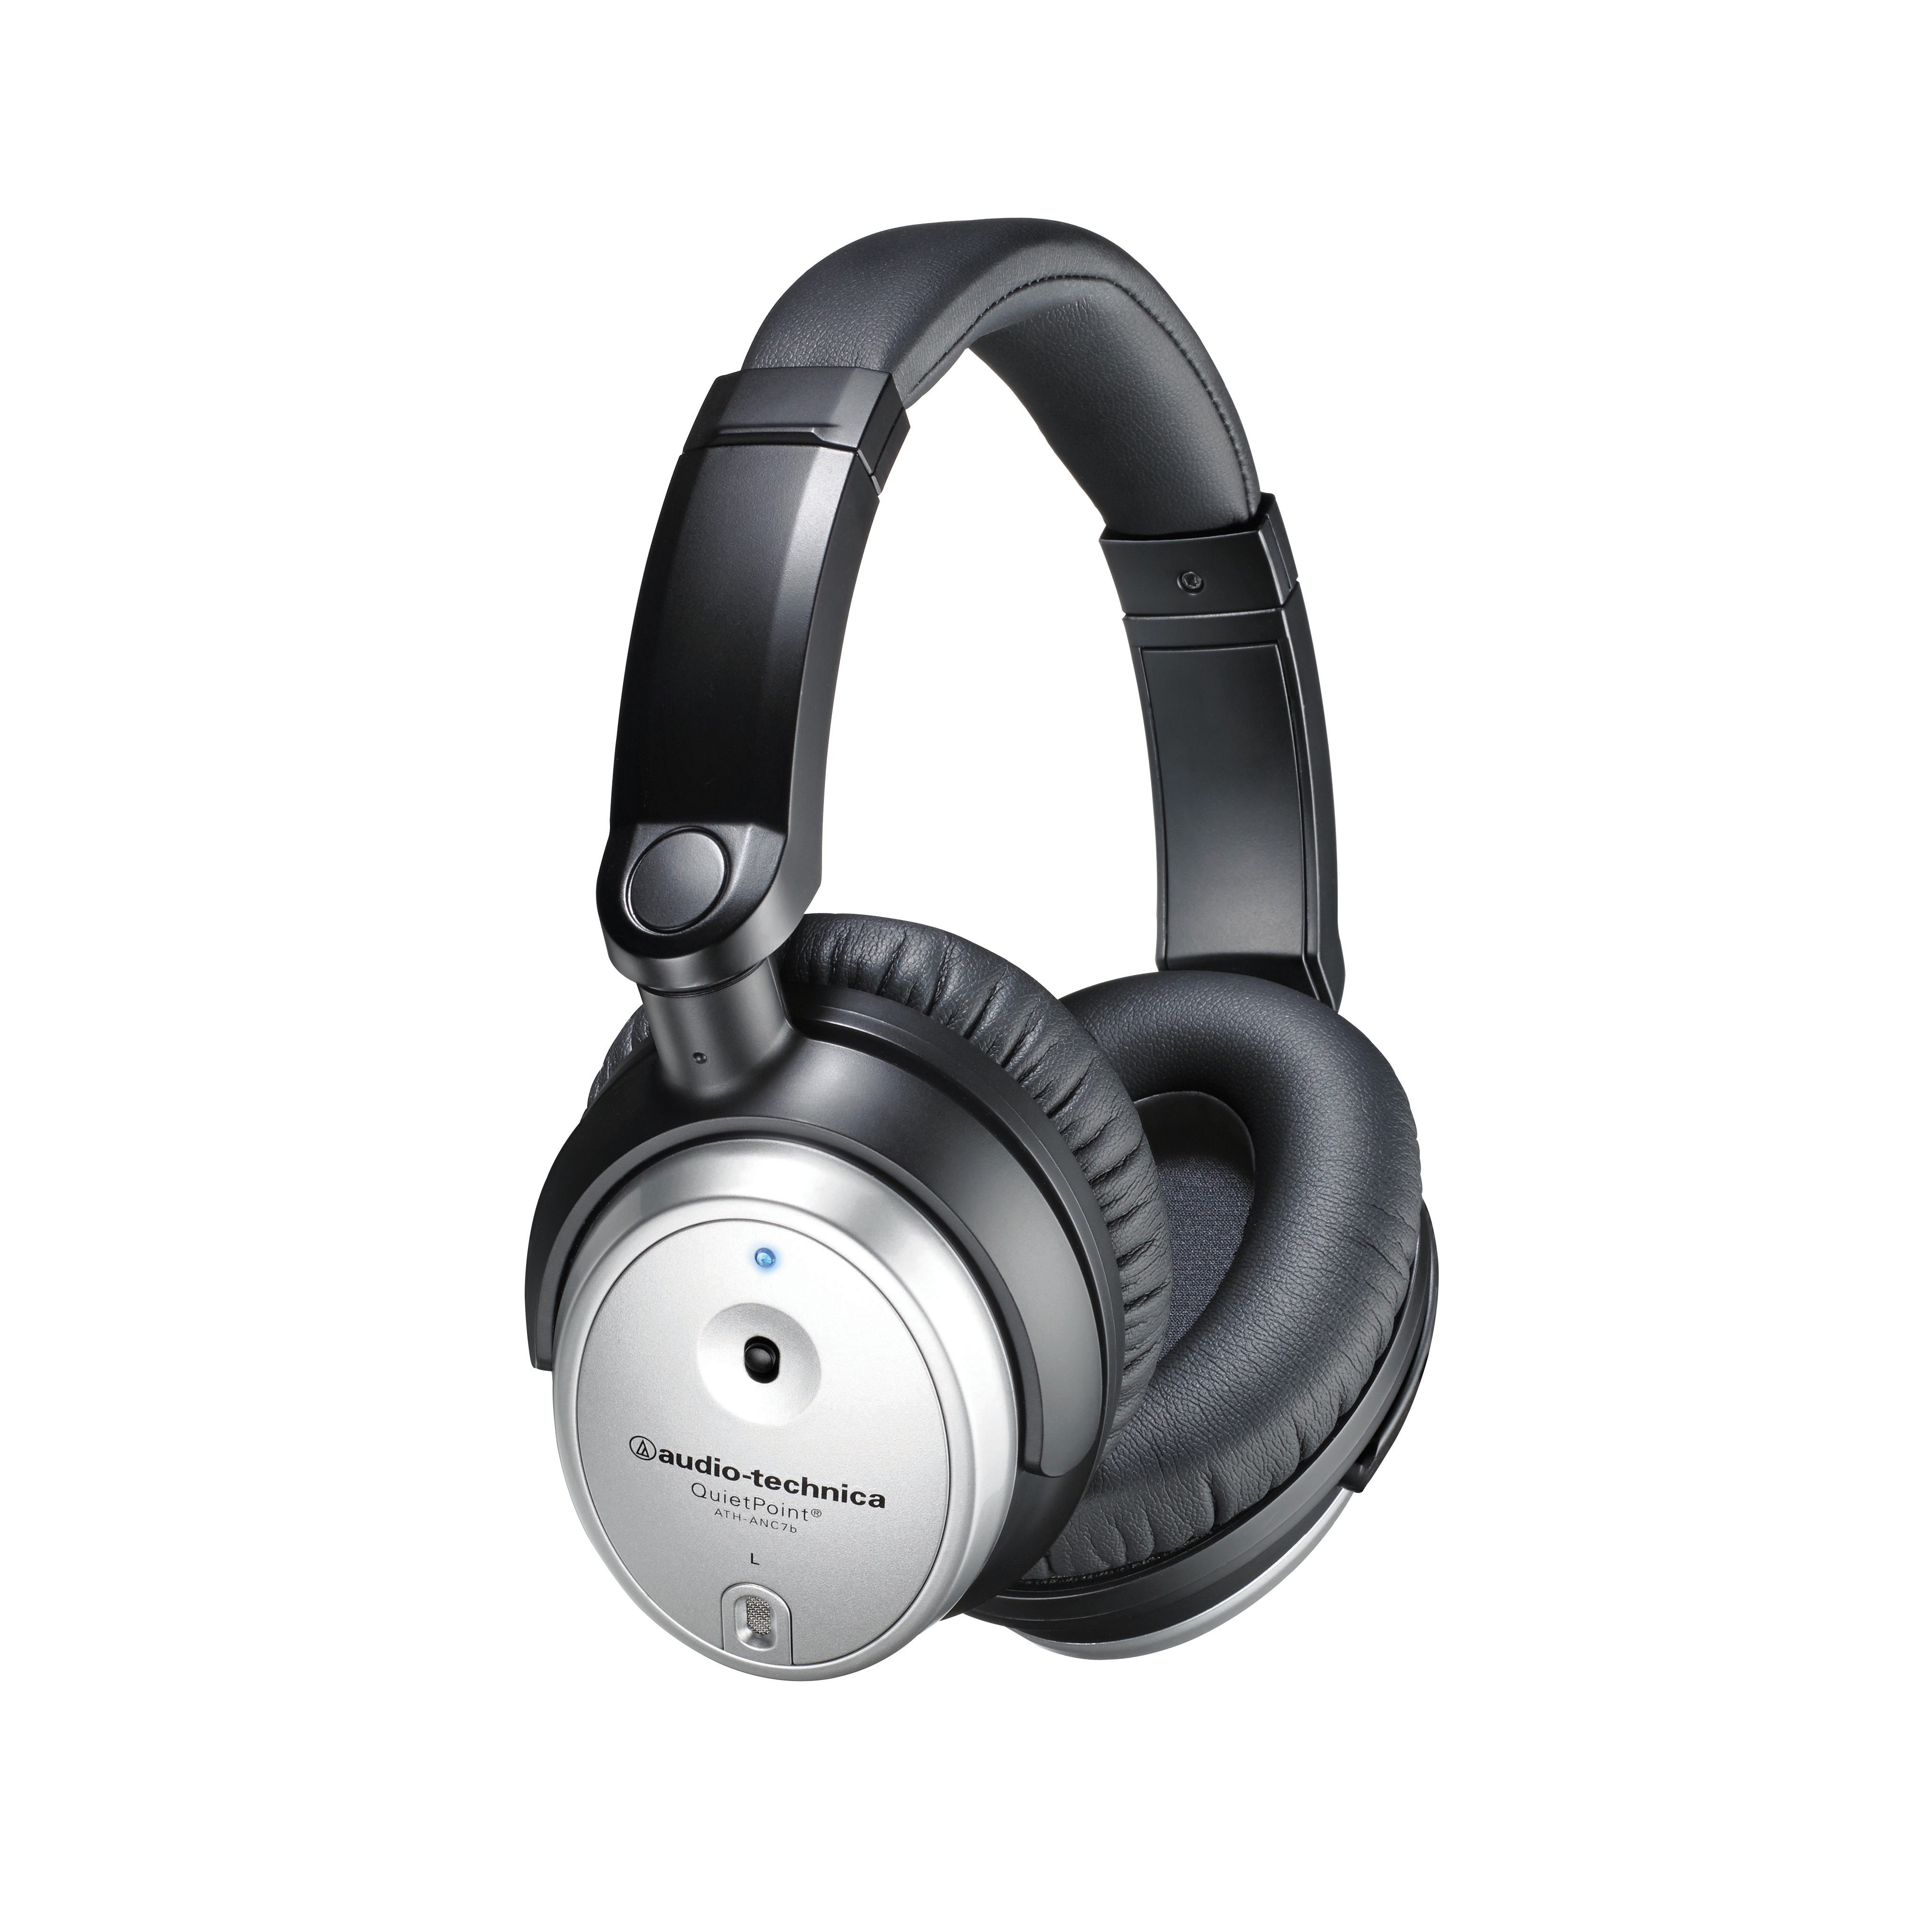 audio technica ath anc7b svis quietpoint active noise cancelling headphones. Black Bedroom Furniture Sets. Home Design Ideas